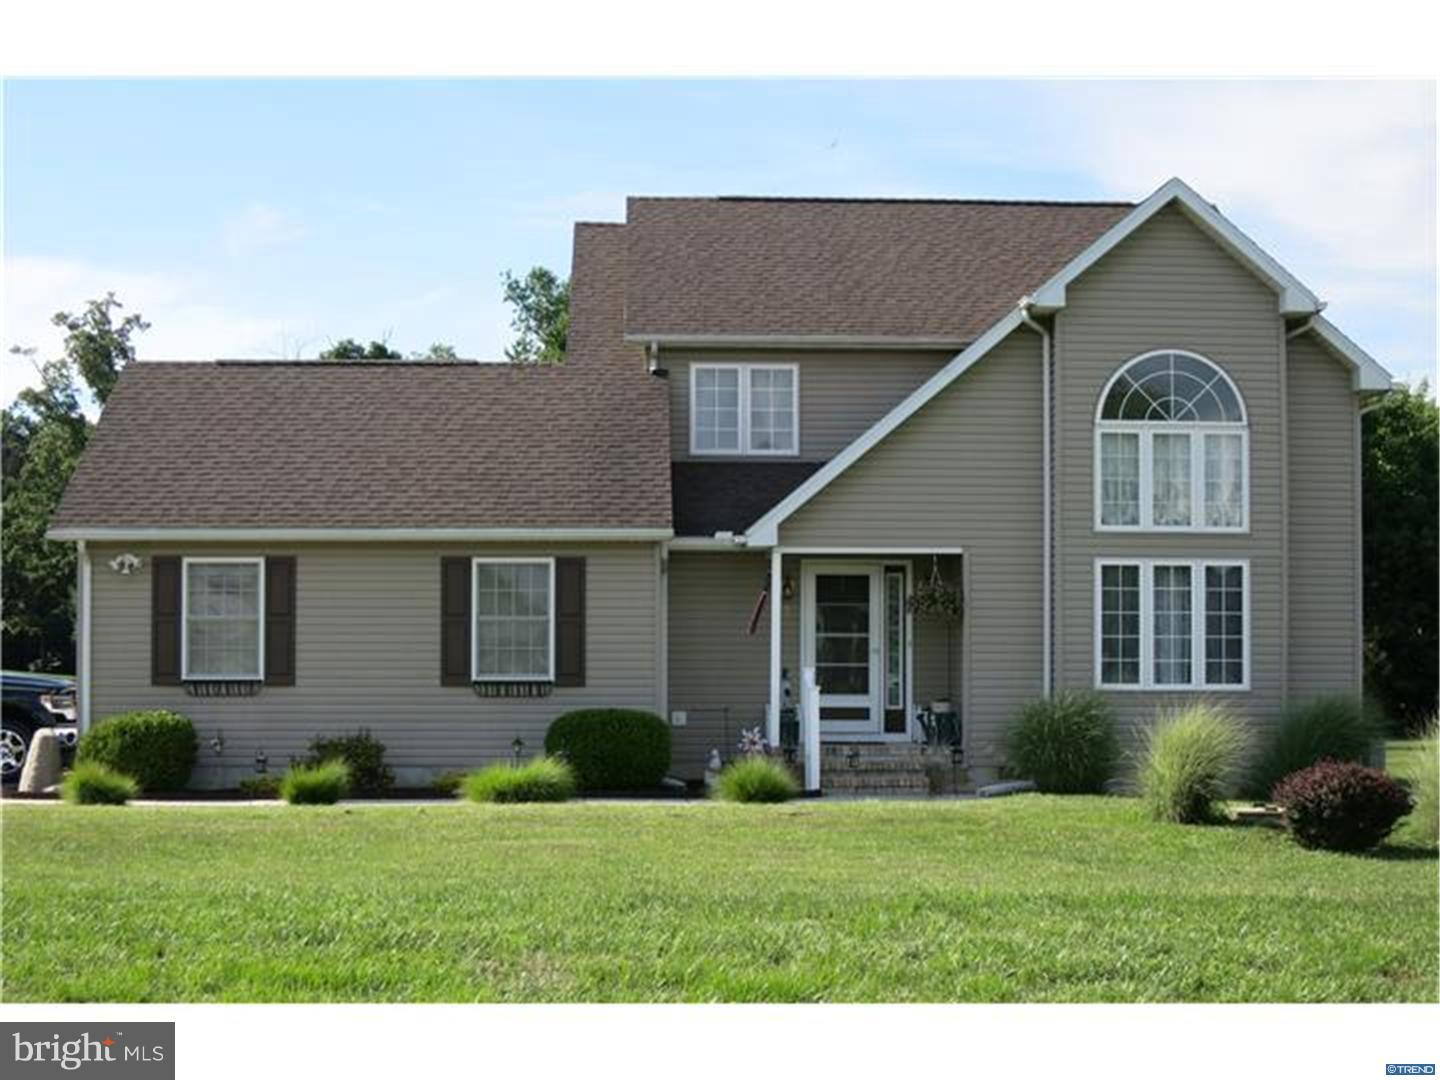 9 CANARY COURT, DOVER, Delaware